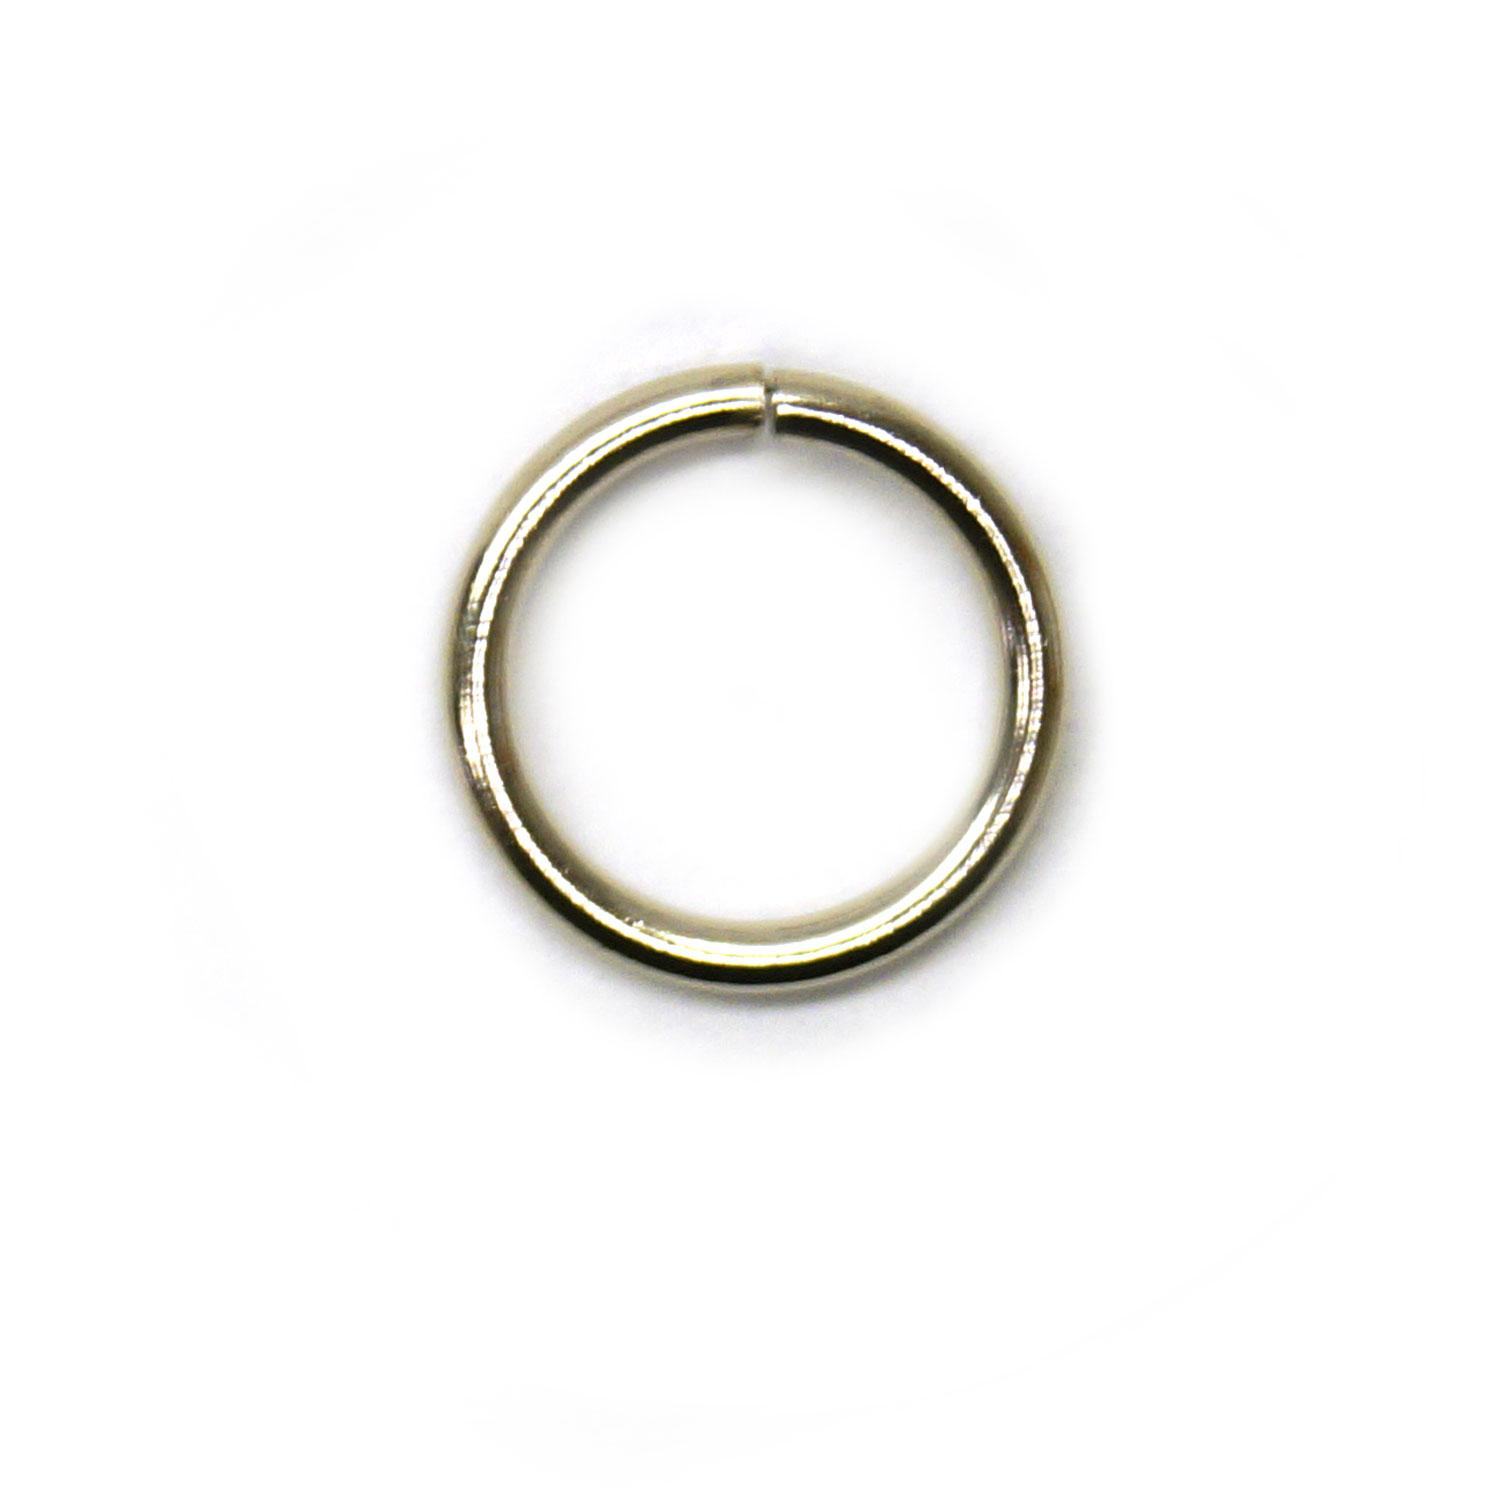 5/16 Nickel Jump Rings - 50 Pieces